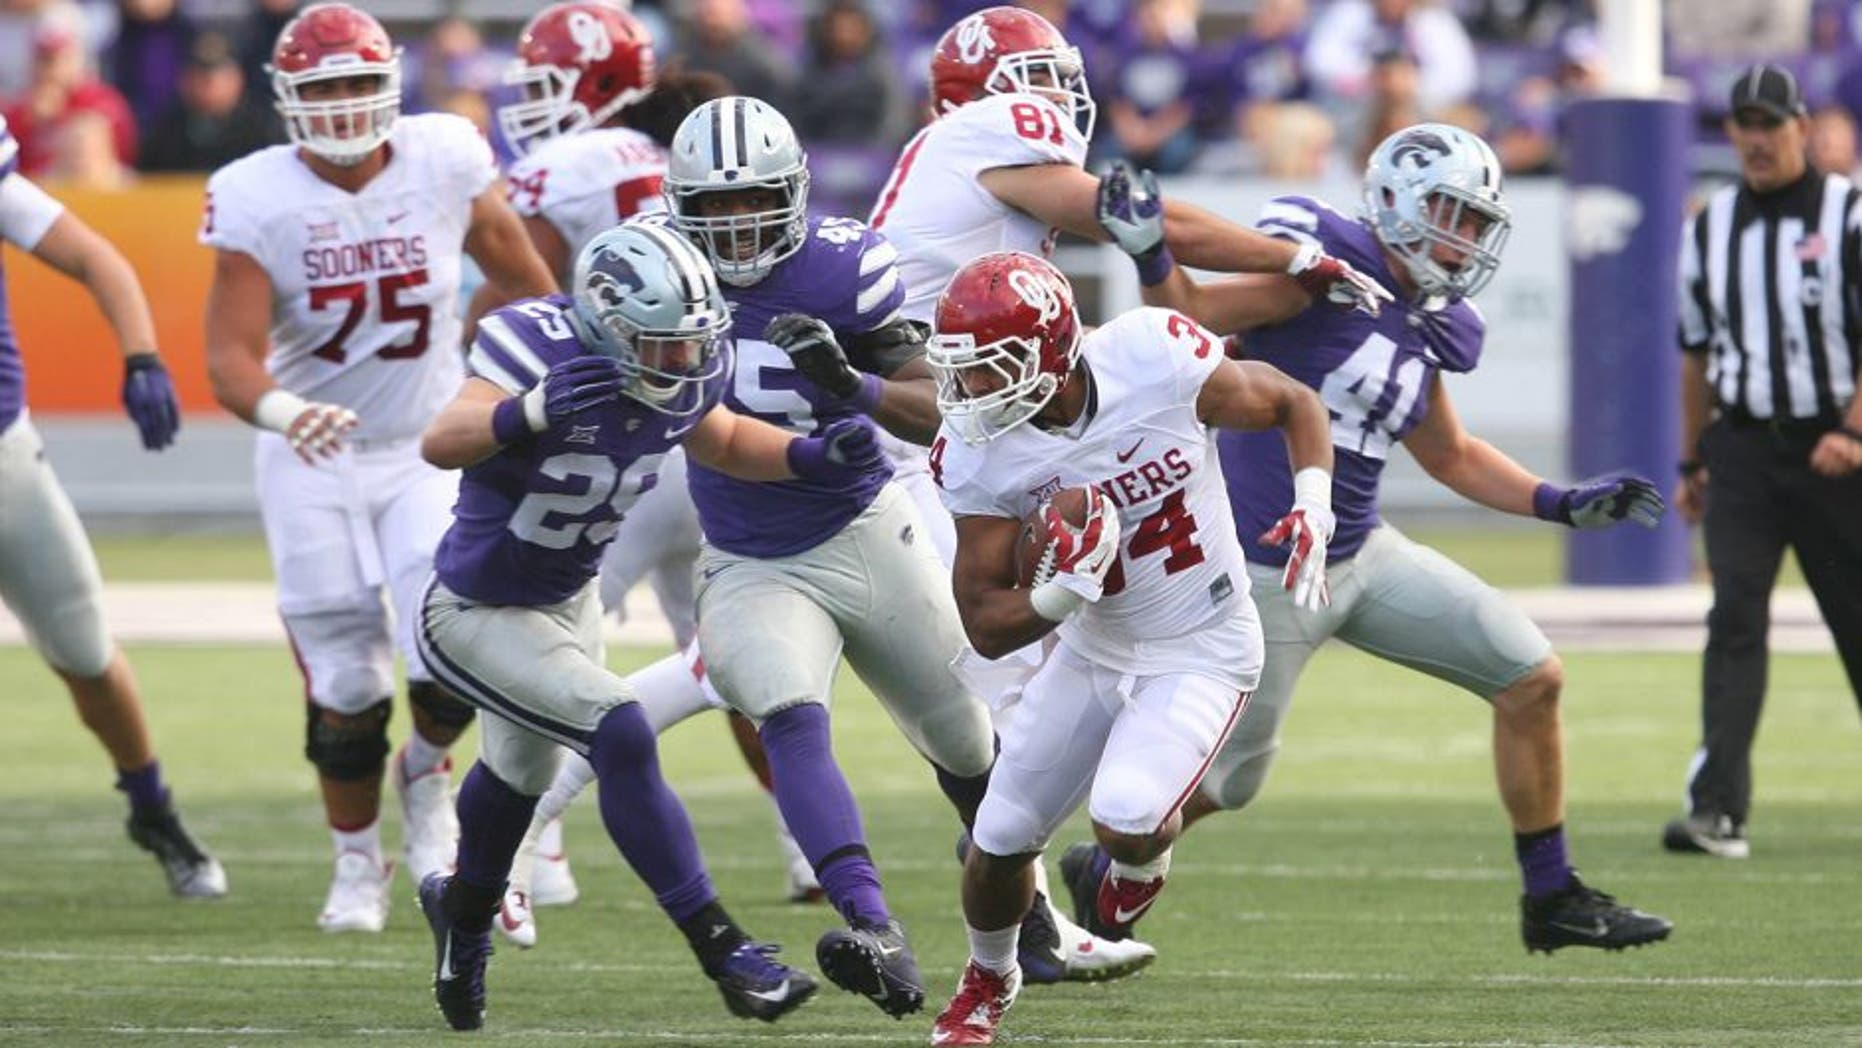 Oct 17, 2015; Manhattan, KS, USA; Oklahoma Sooners running back Daniel Brooks (34) is chased by Kansas State Wildcats defensive back Sean Newlan (29) during the Sooners 55-0 win at Bill Snyder Family Football Stadium. Mandatory Credit: Scott Sewell-USA TODAY Sports